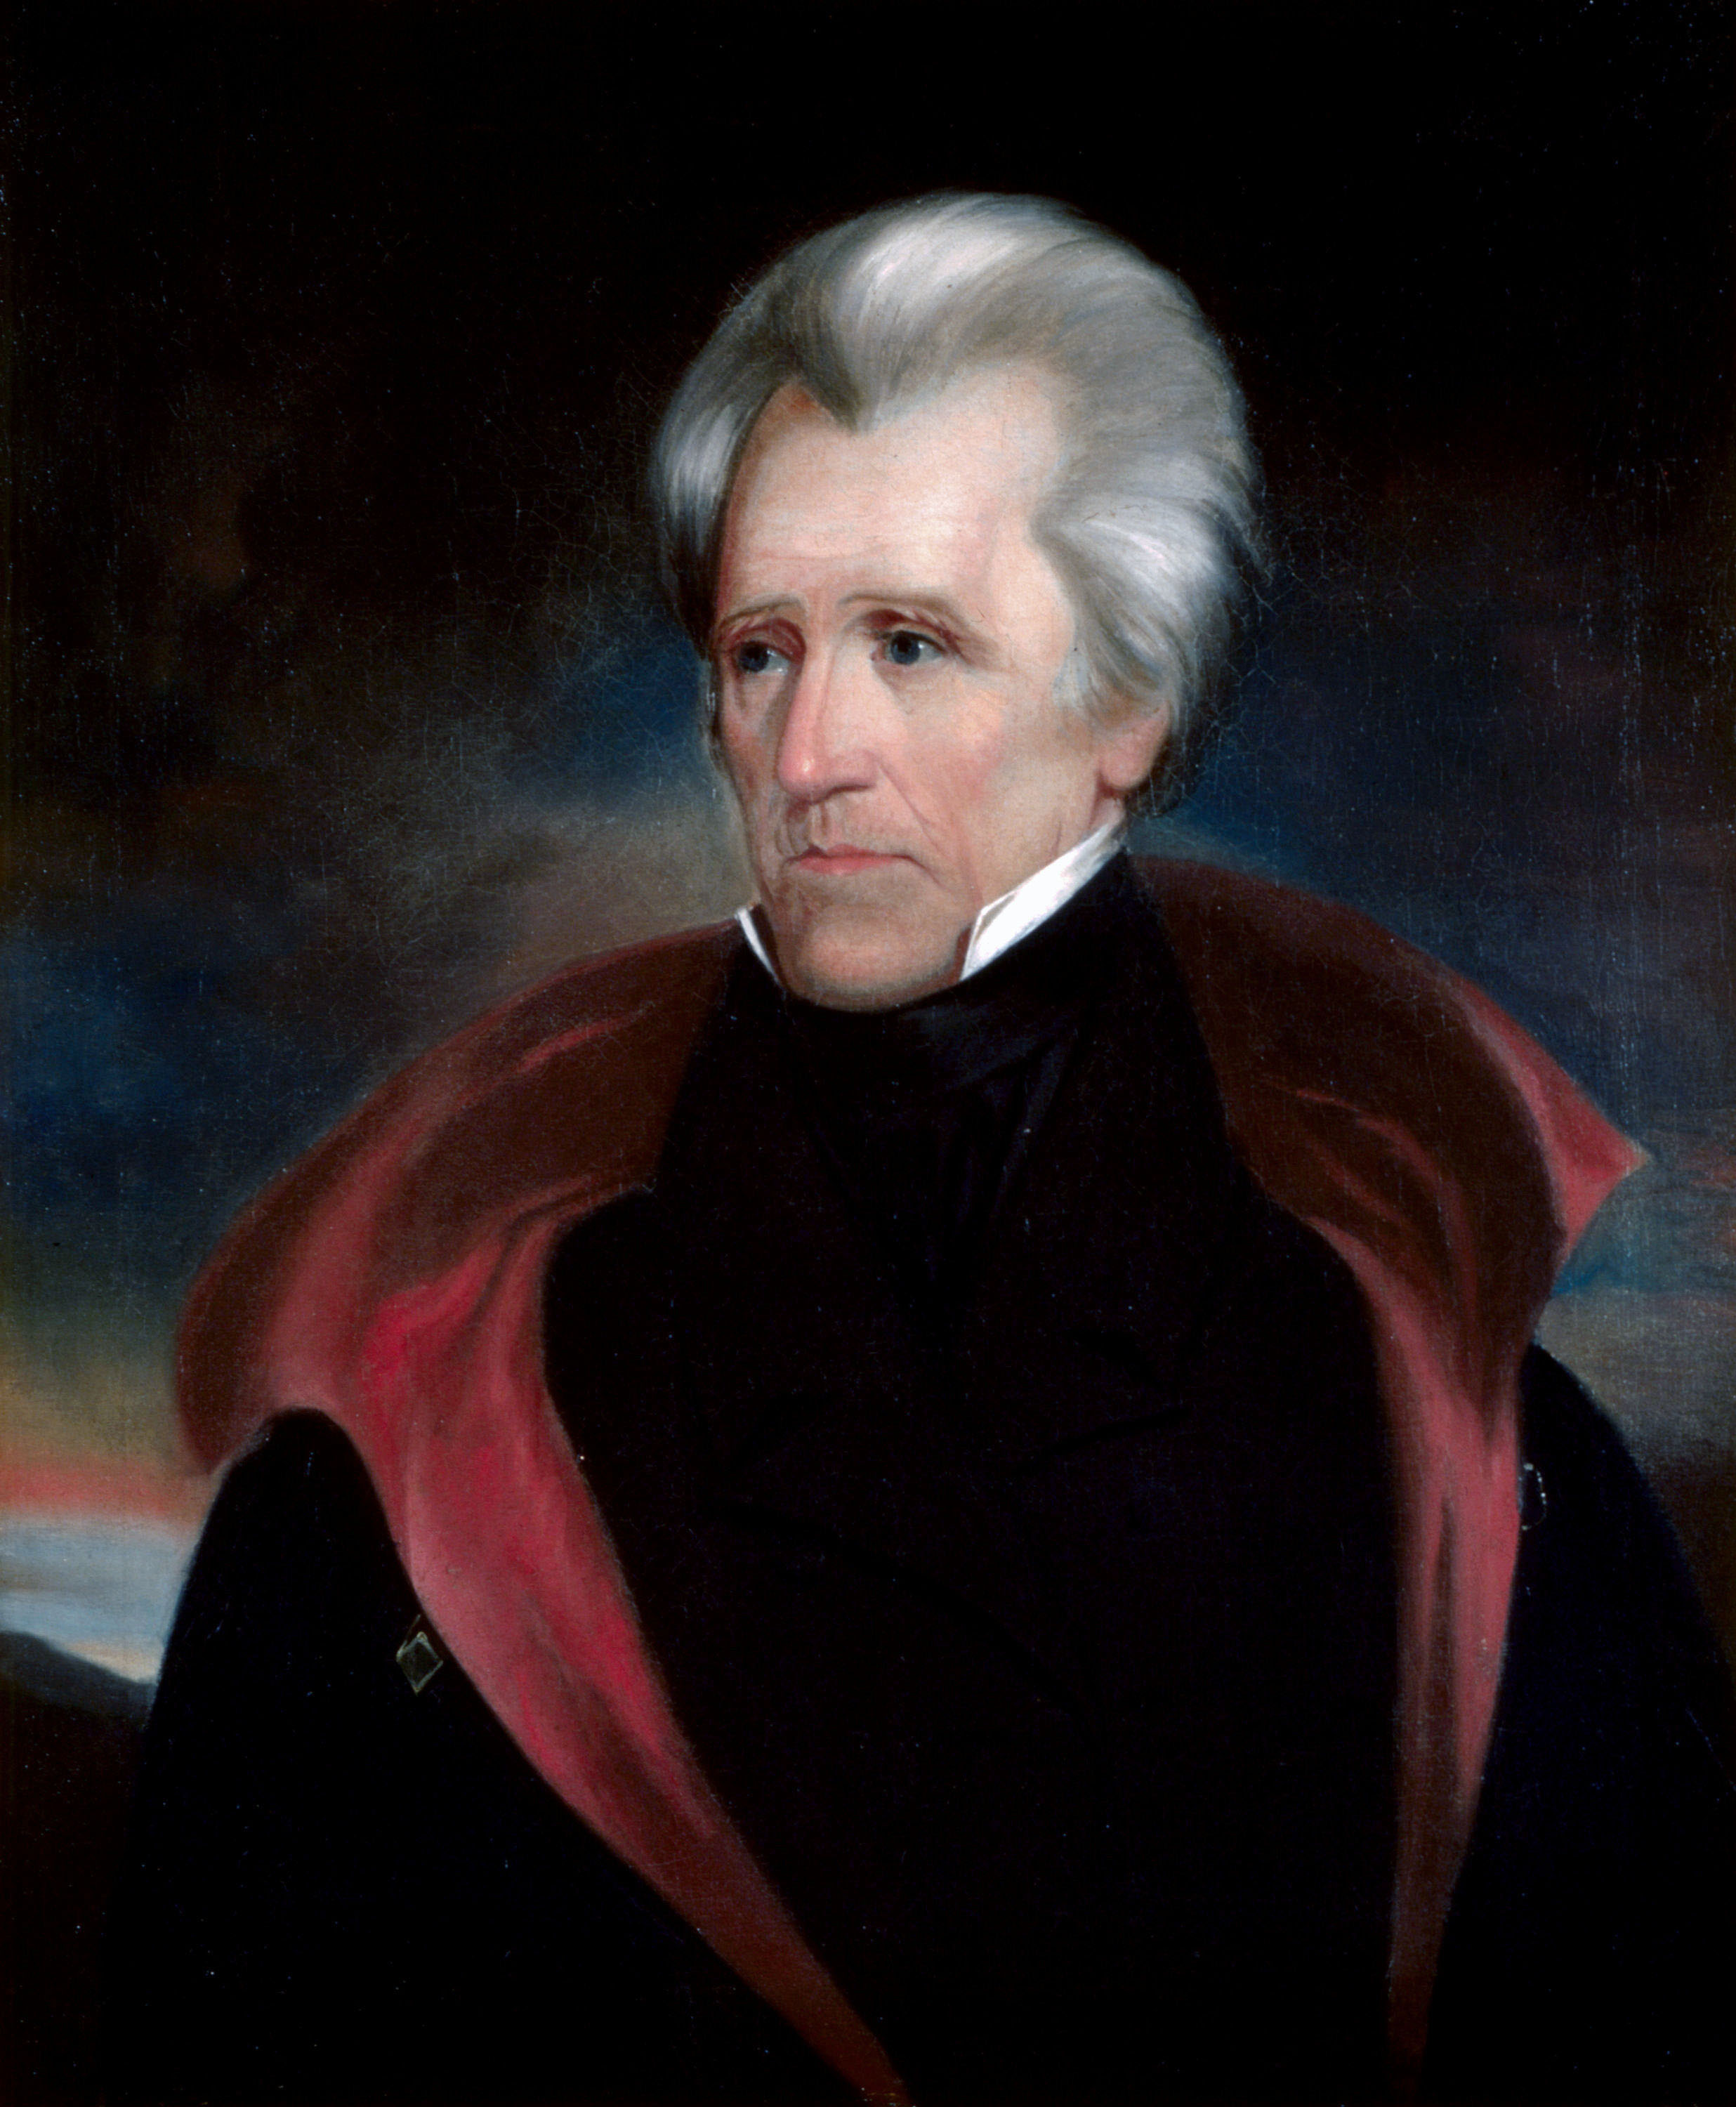 File:Andrew jackson headFXD.jpg - Wikimedia Commons